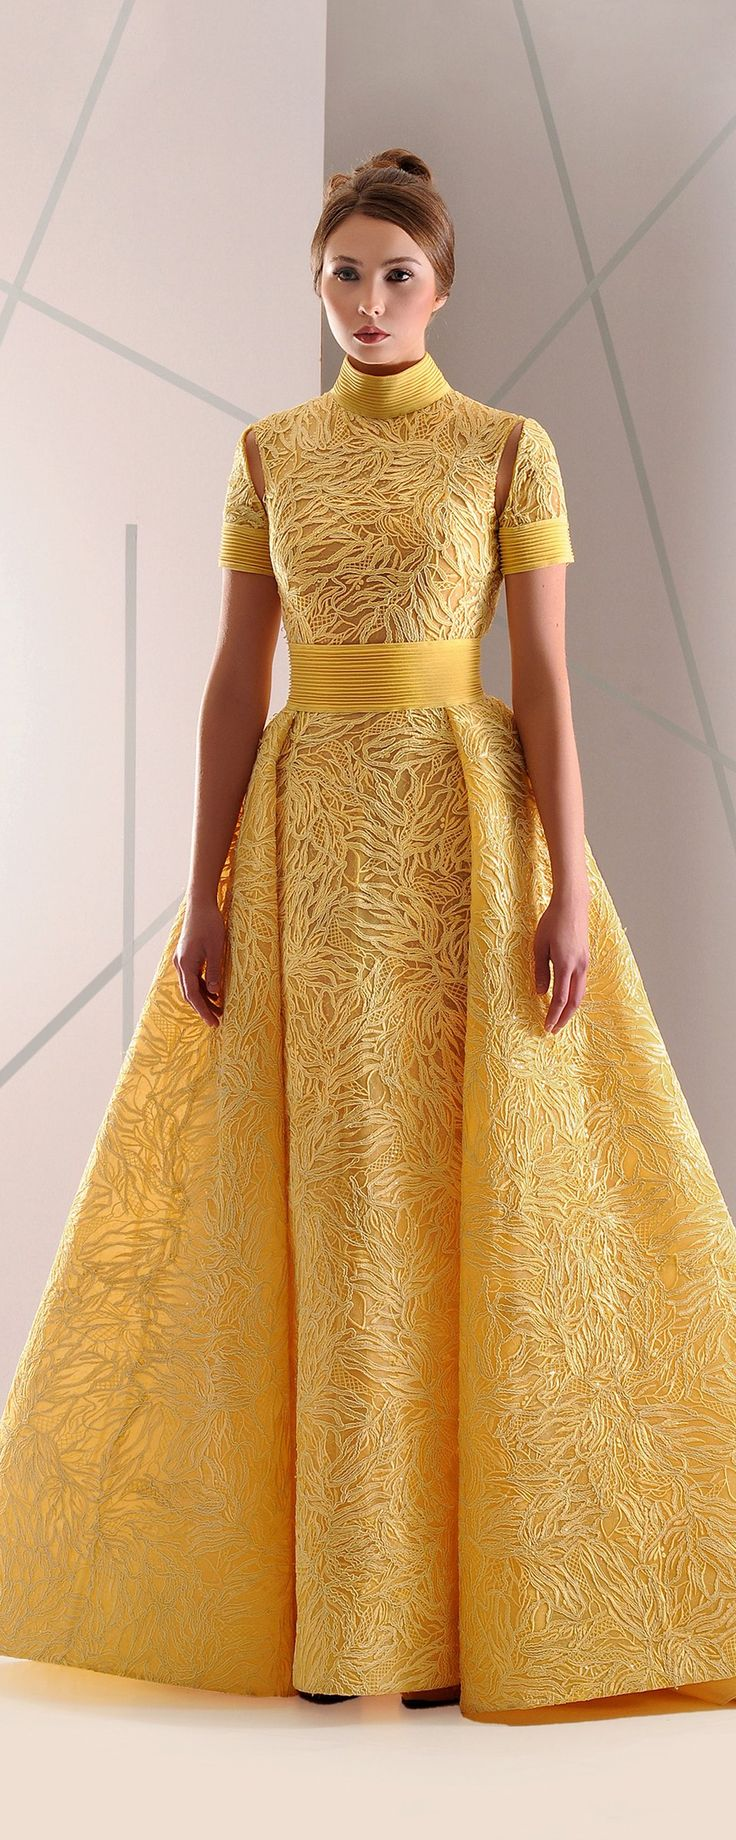 Antonios Couture Frühling-Sommer 2016 – Couture